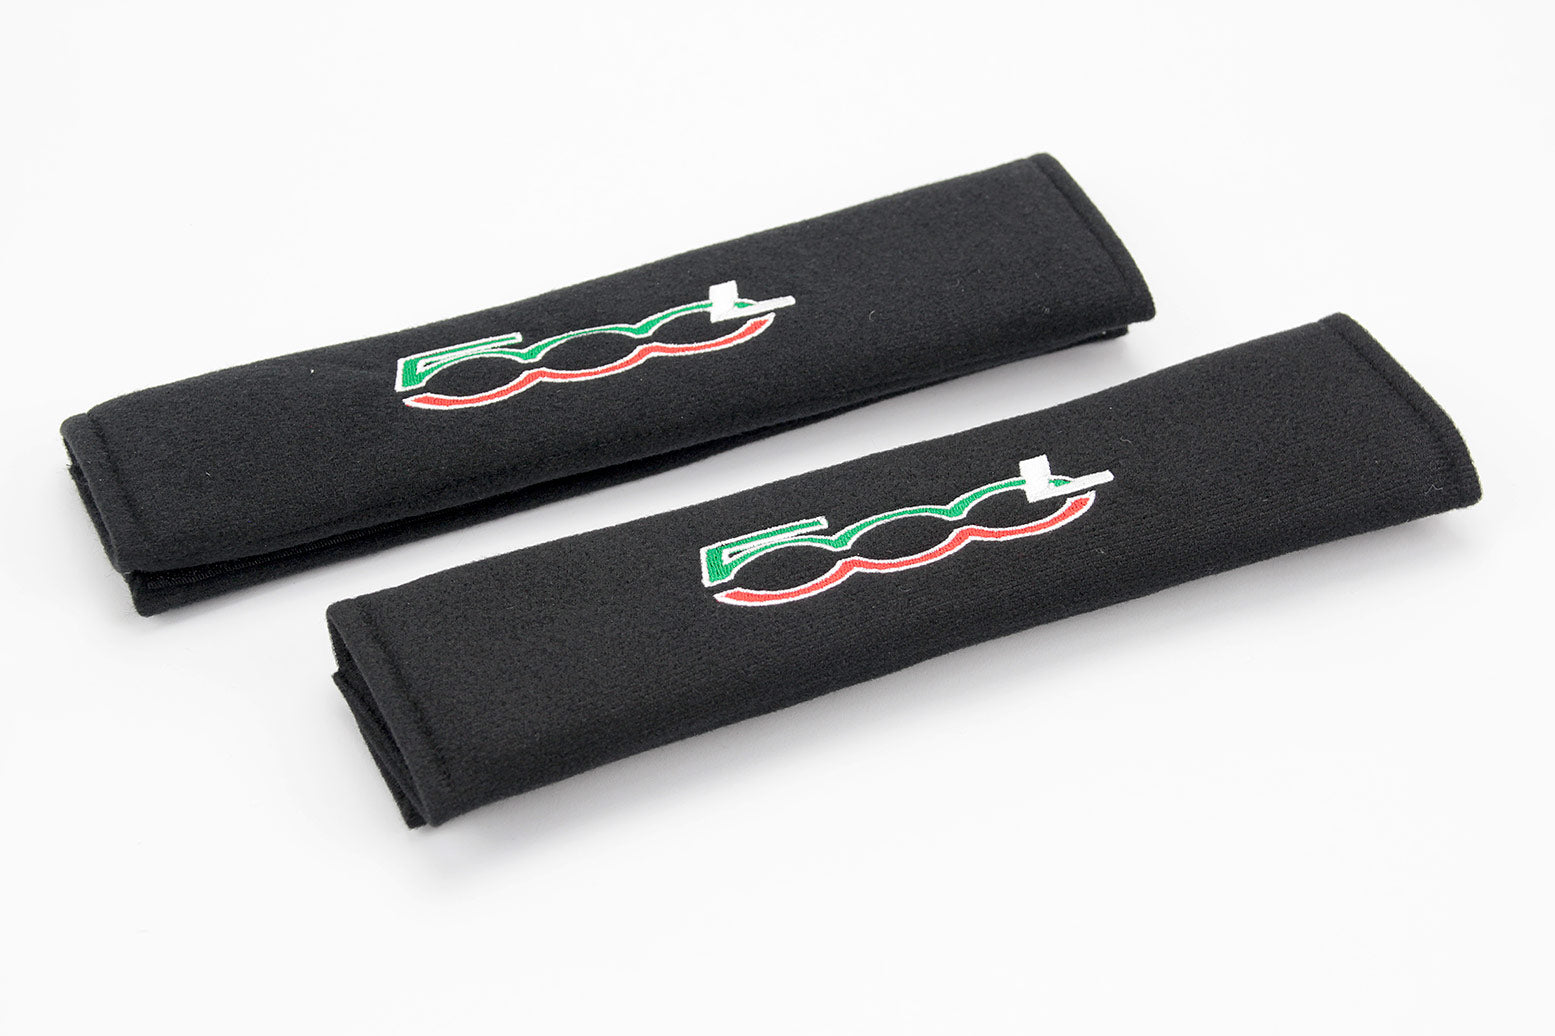 Fiat 500L logo embroidered on padded seat belt covers.